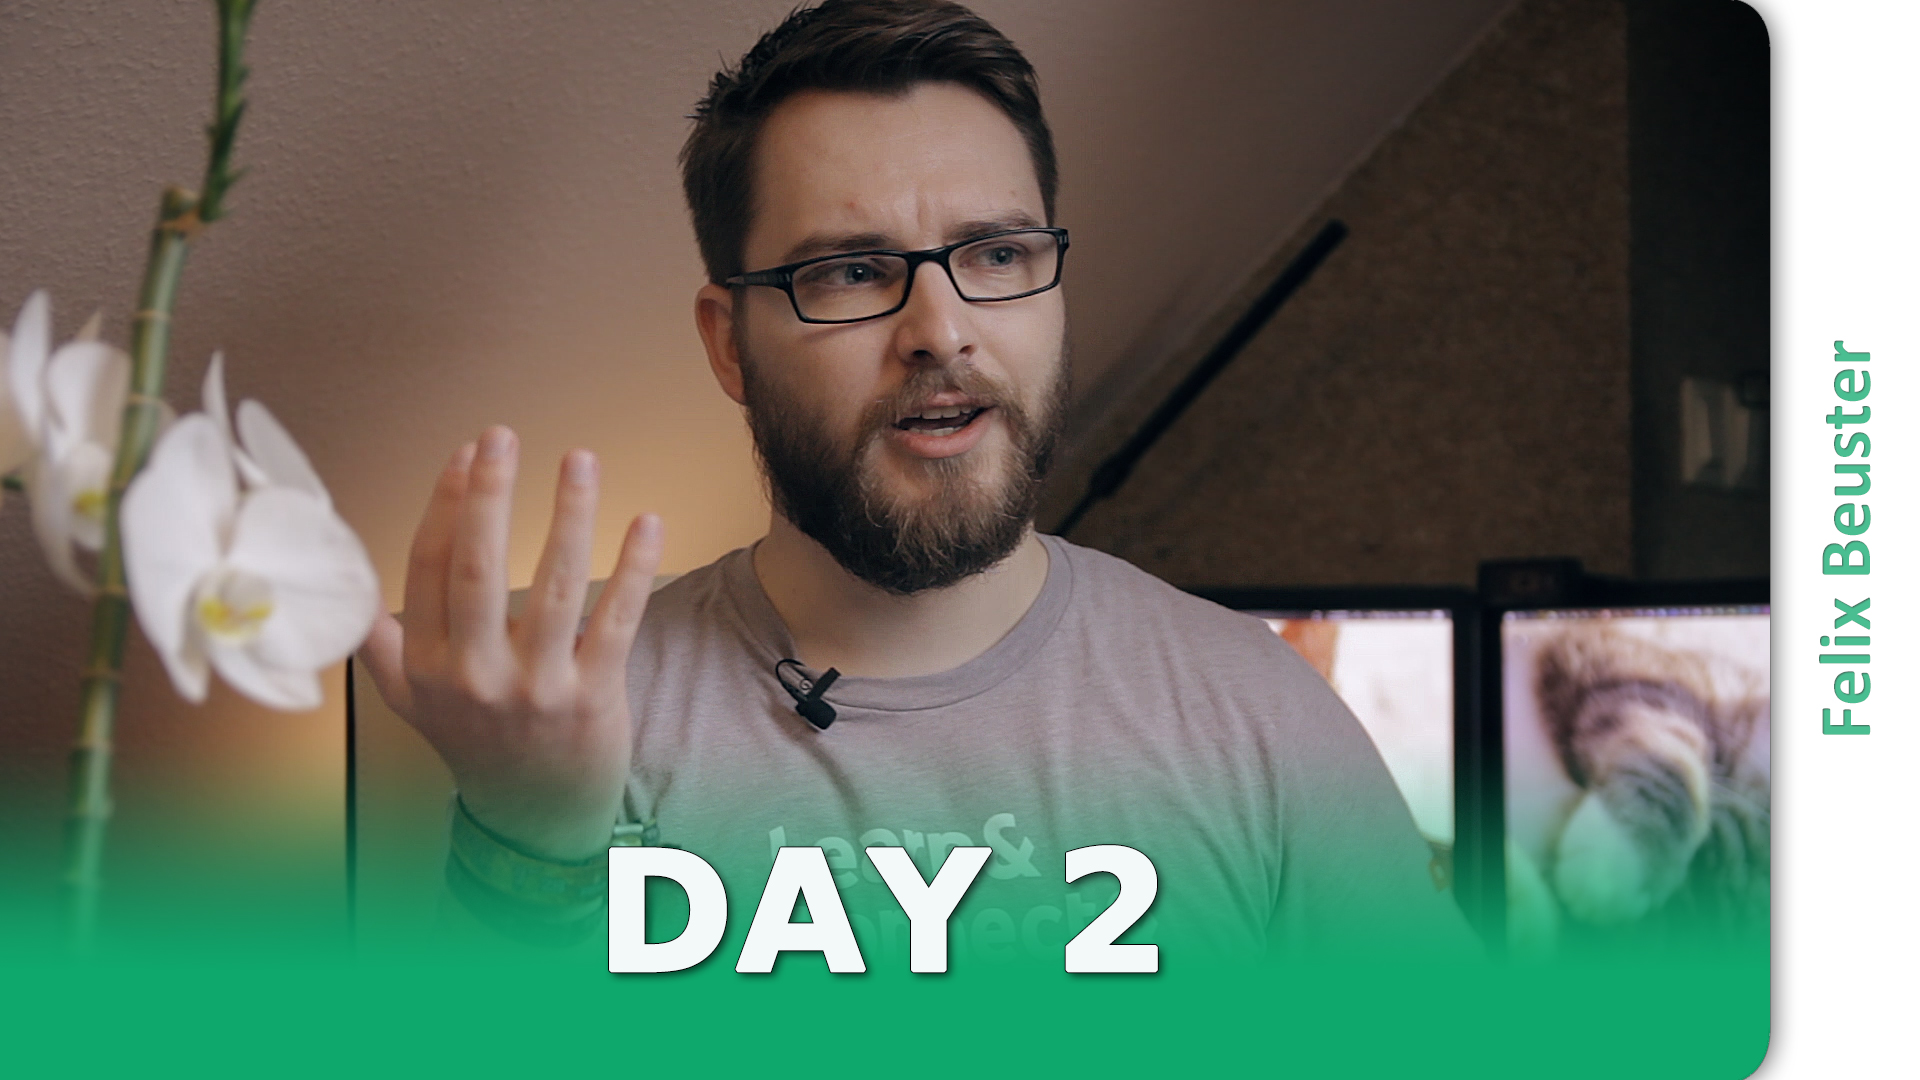 Master Thesis Daily Vlog #002